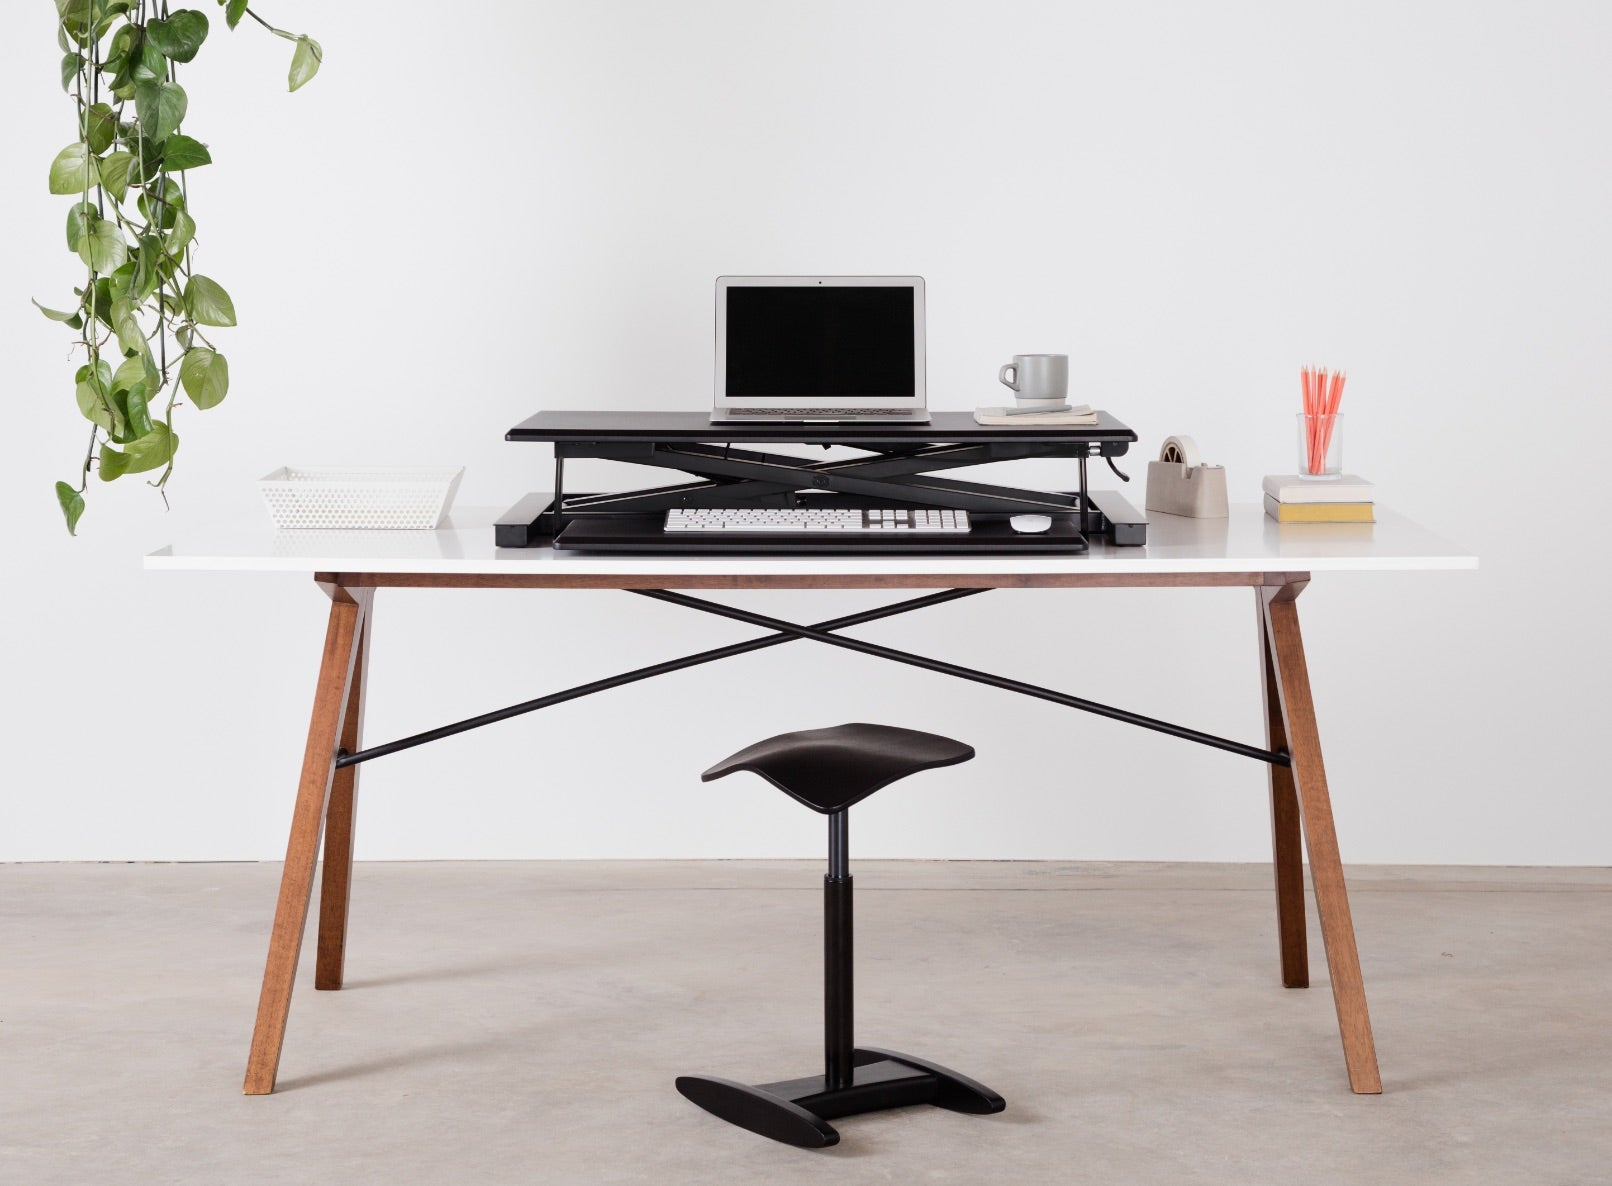 Fully cooper standing desk converter in black on a table with a black Tic Toc chair